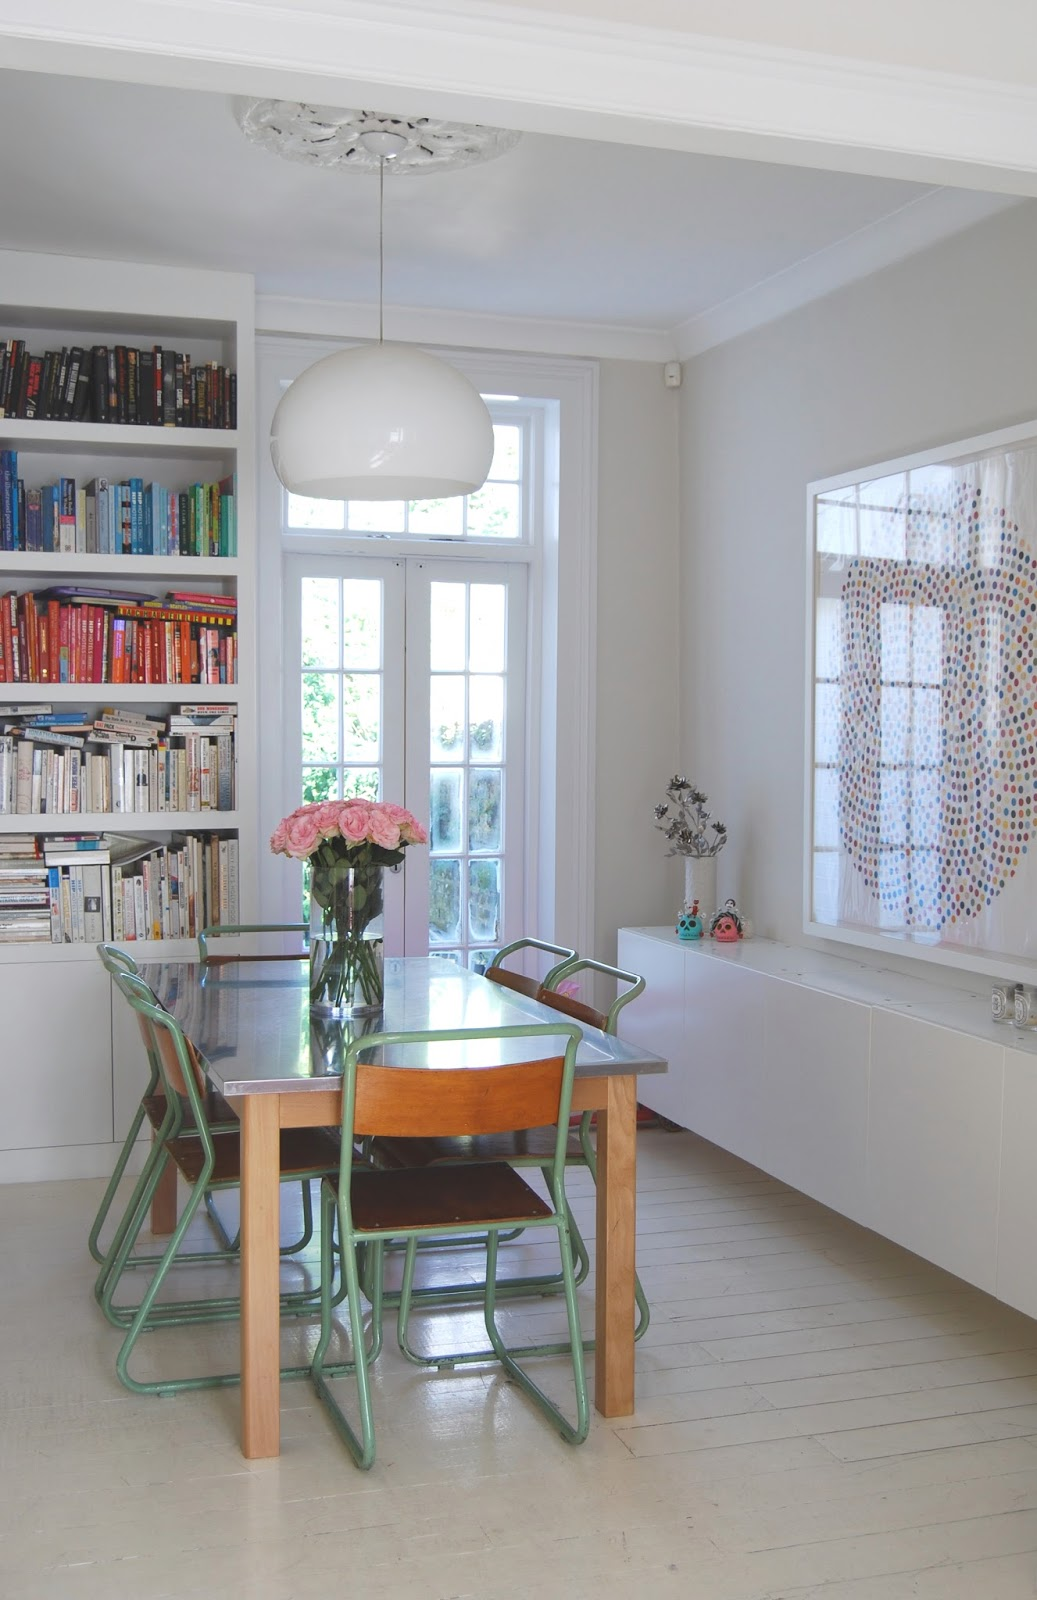 Obsessive Compulsive Redecorating - French For Pineapple Blog